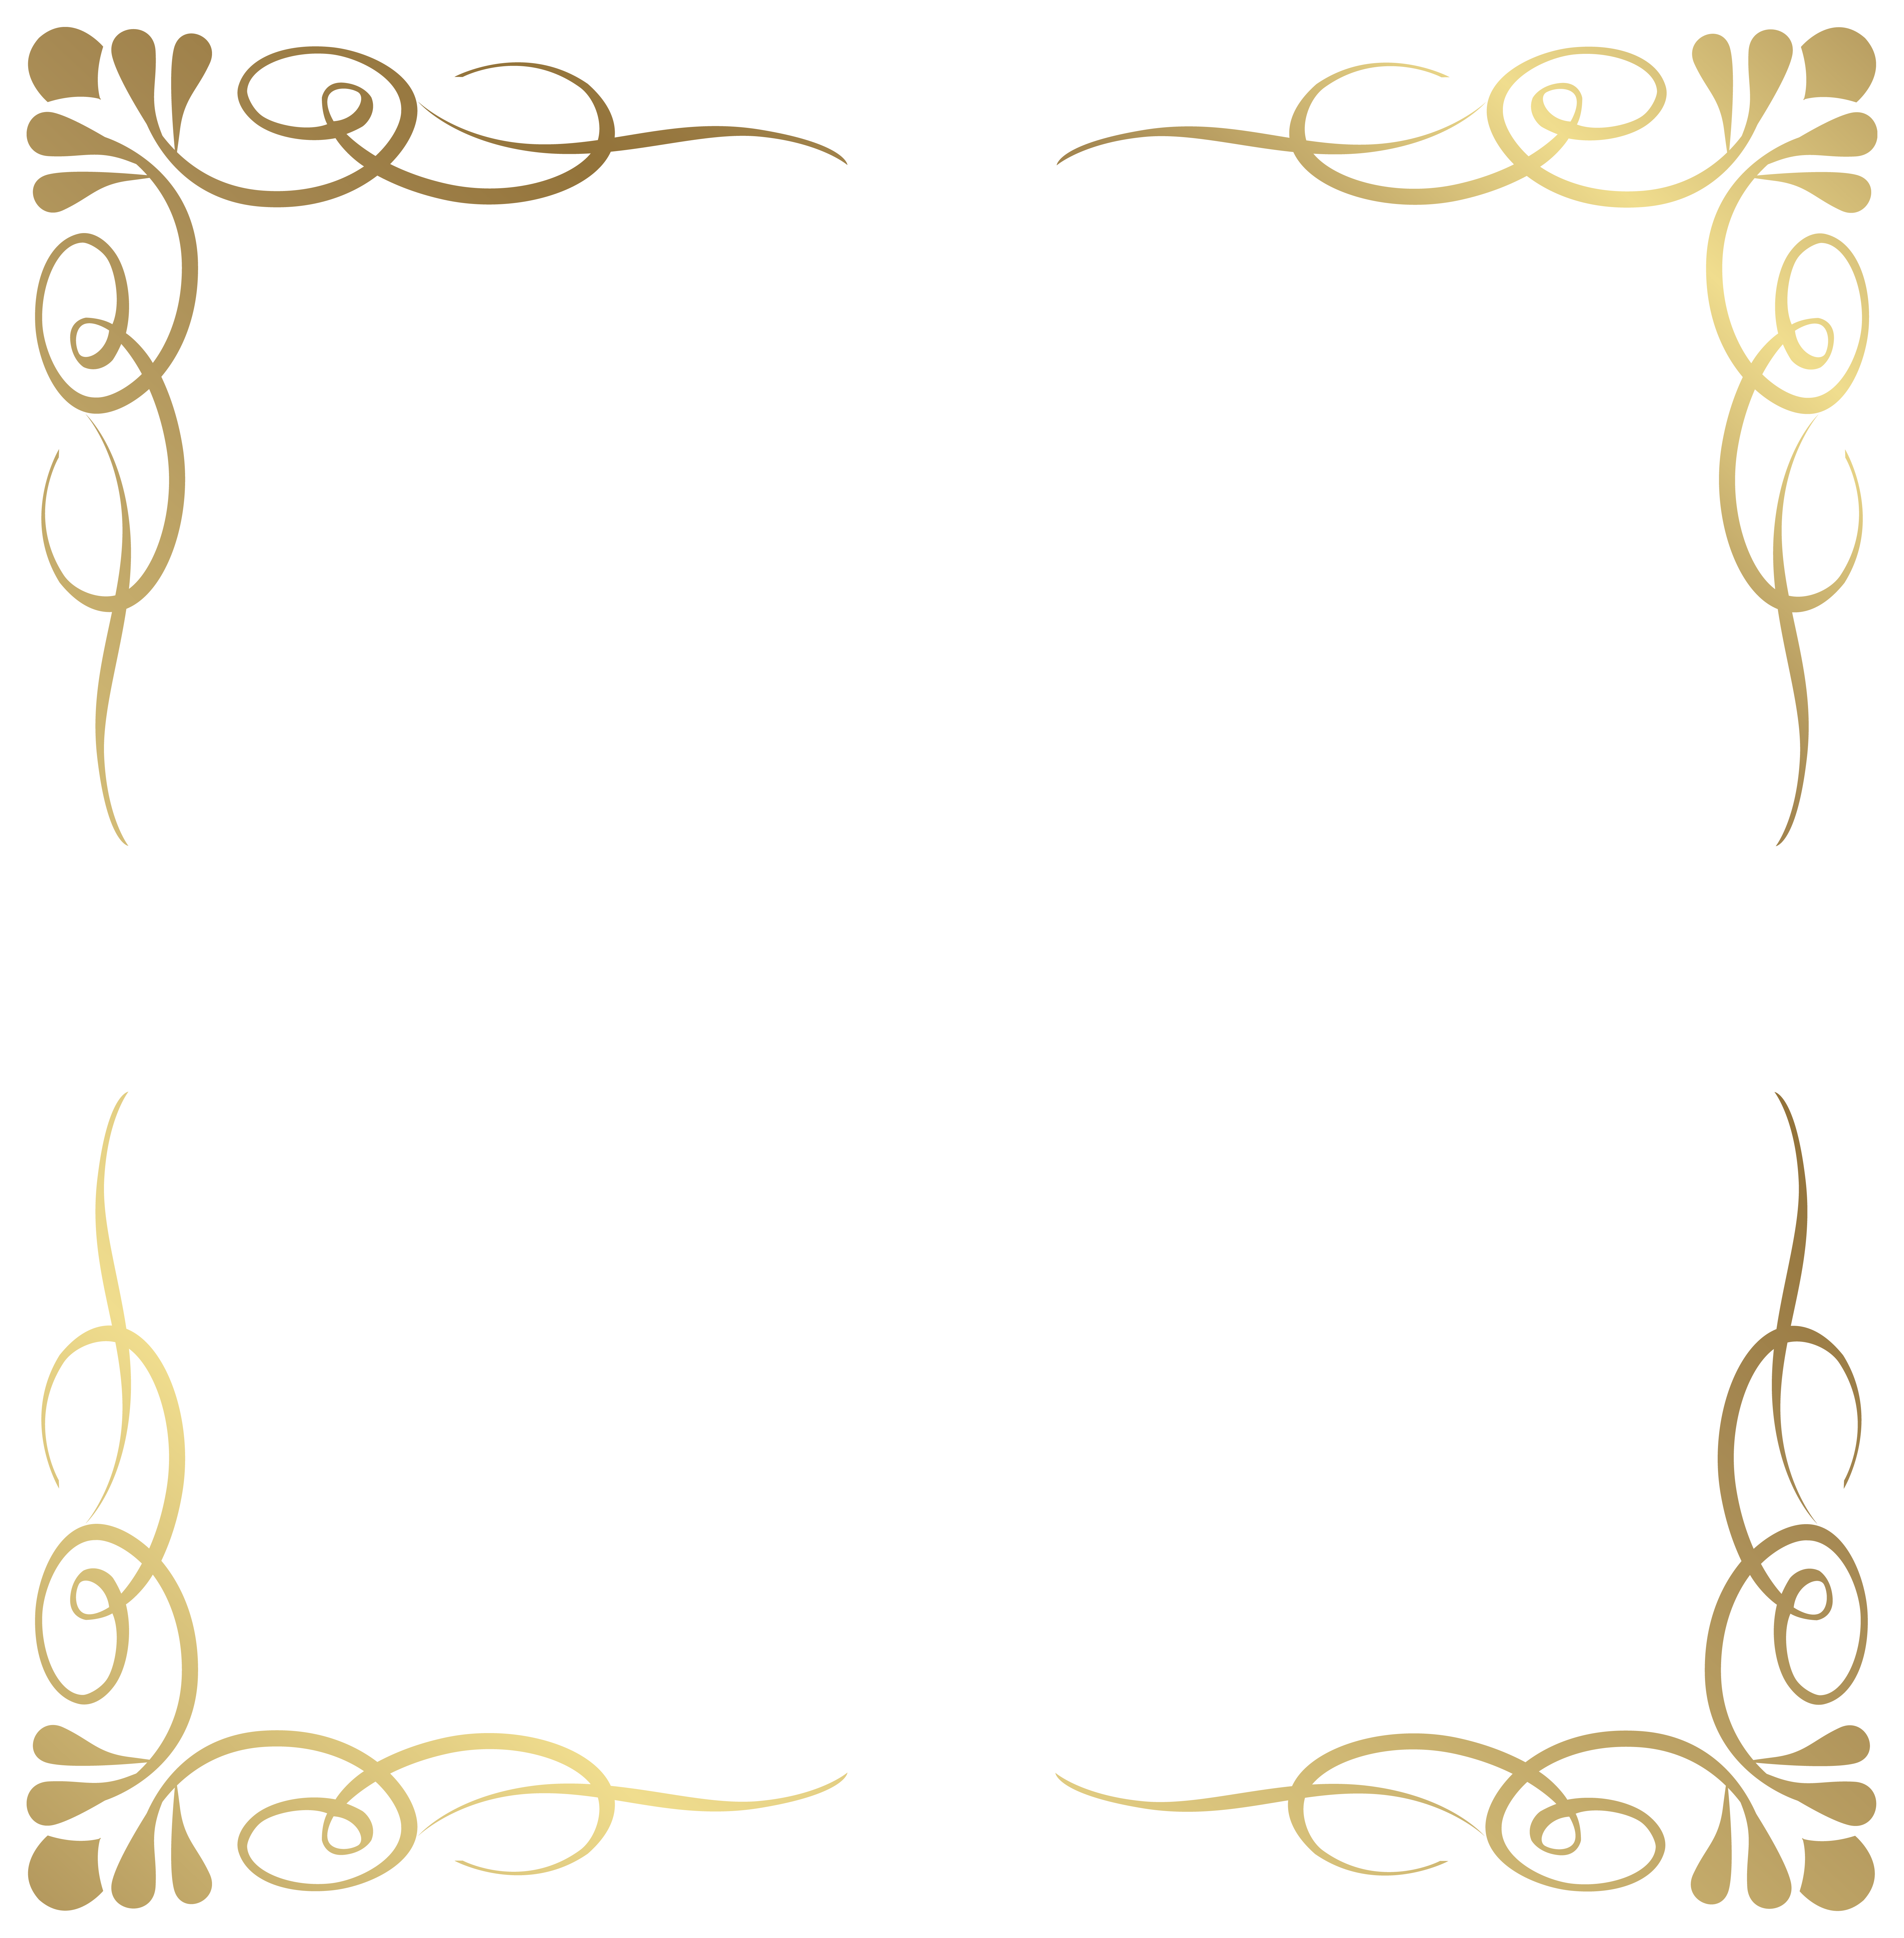 Fancy menu borders templates. Notebook clipart frame